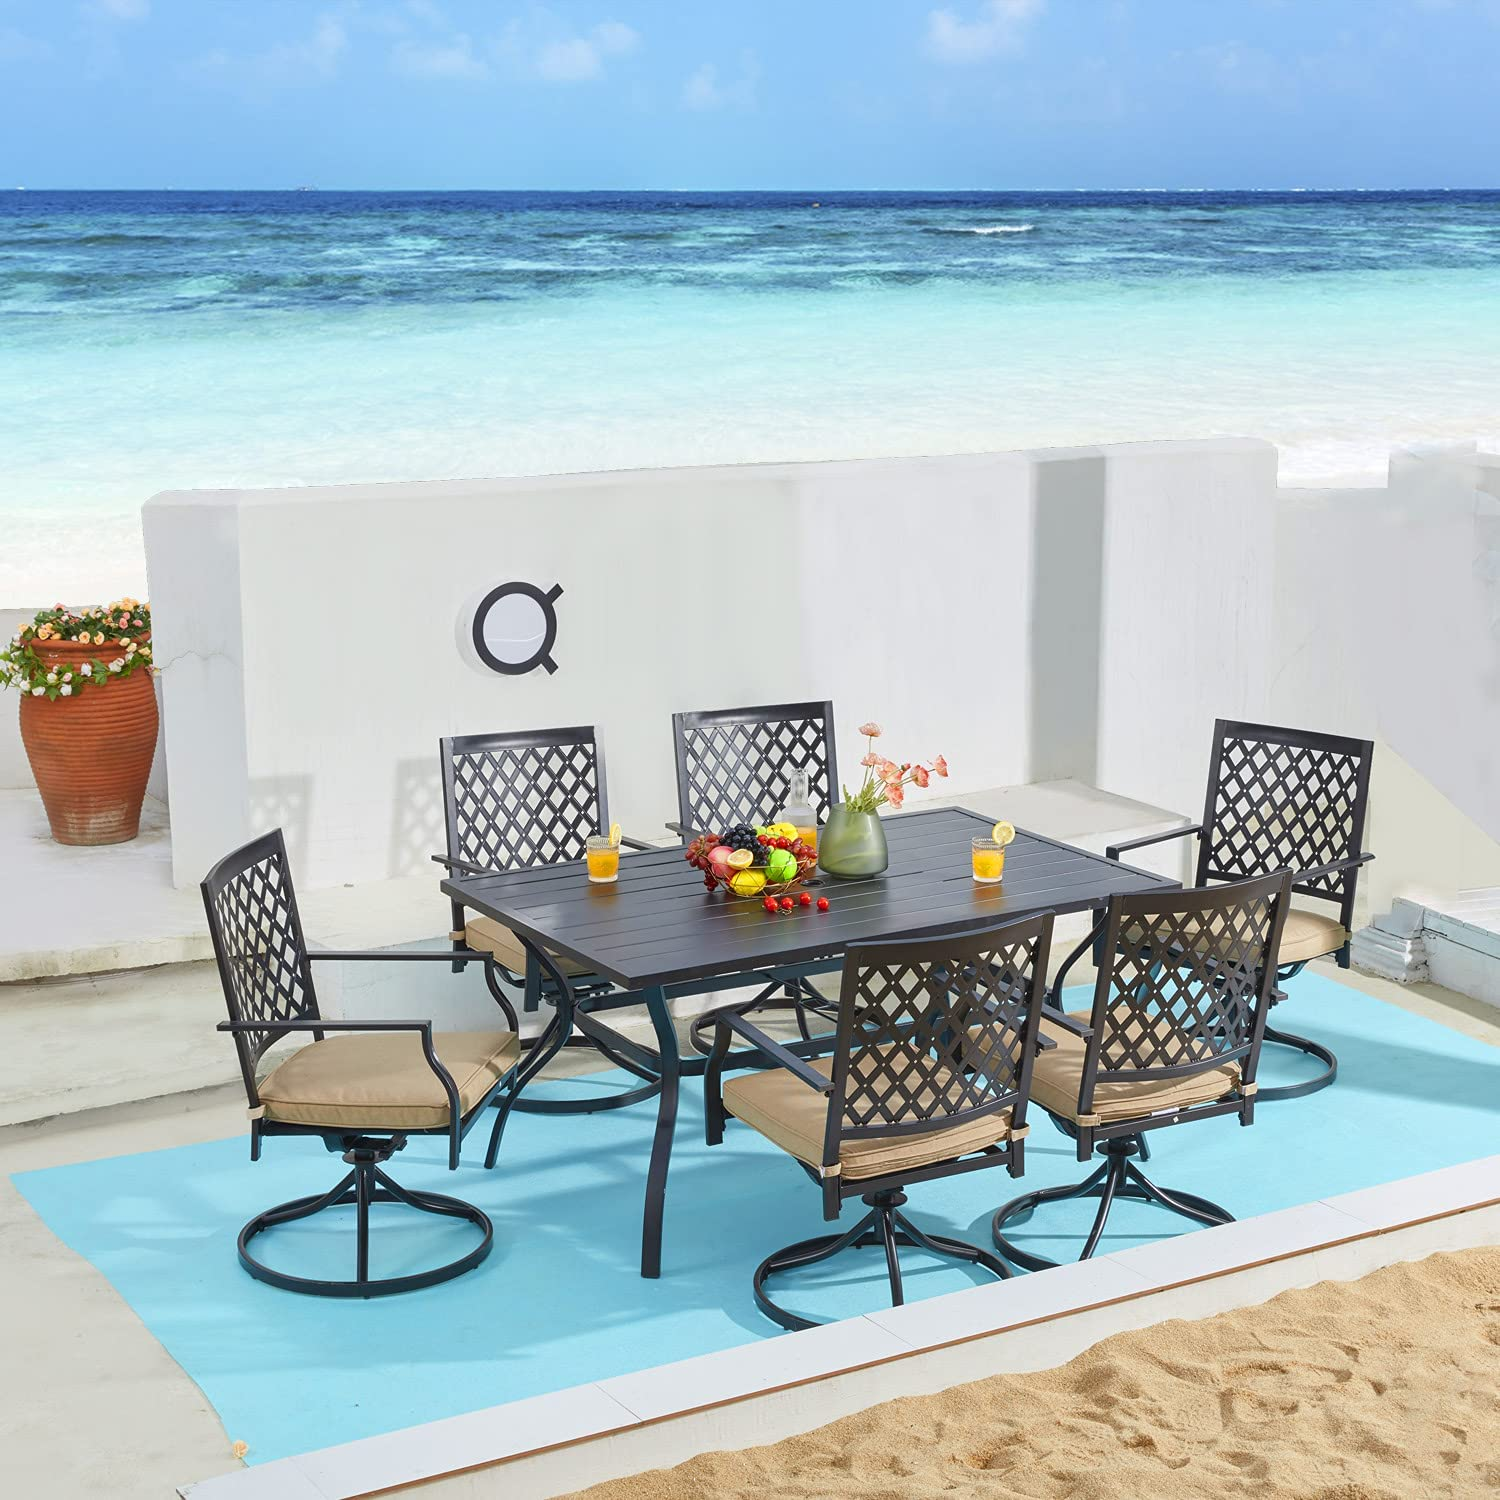 VICLLAX 7 Piece Outdoor Patio Dining Furniture Set- 6 Outdoor Swivel Dining Chairs and 1 Rectangular Outdoor Table Set for Lawn Garden